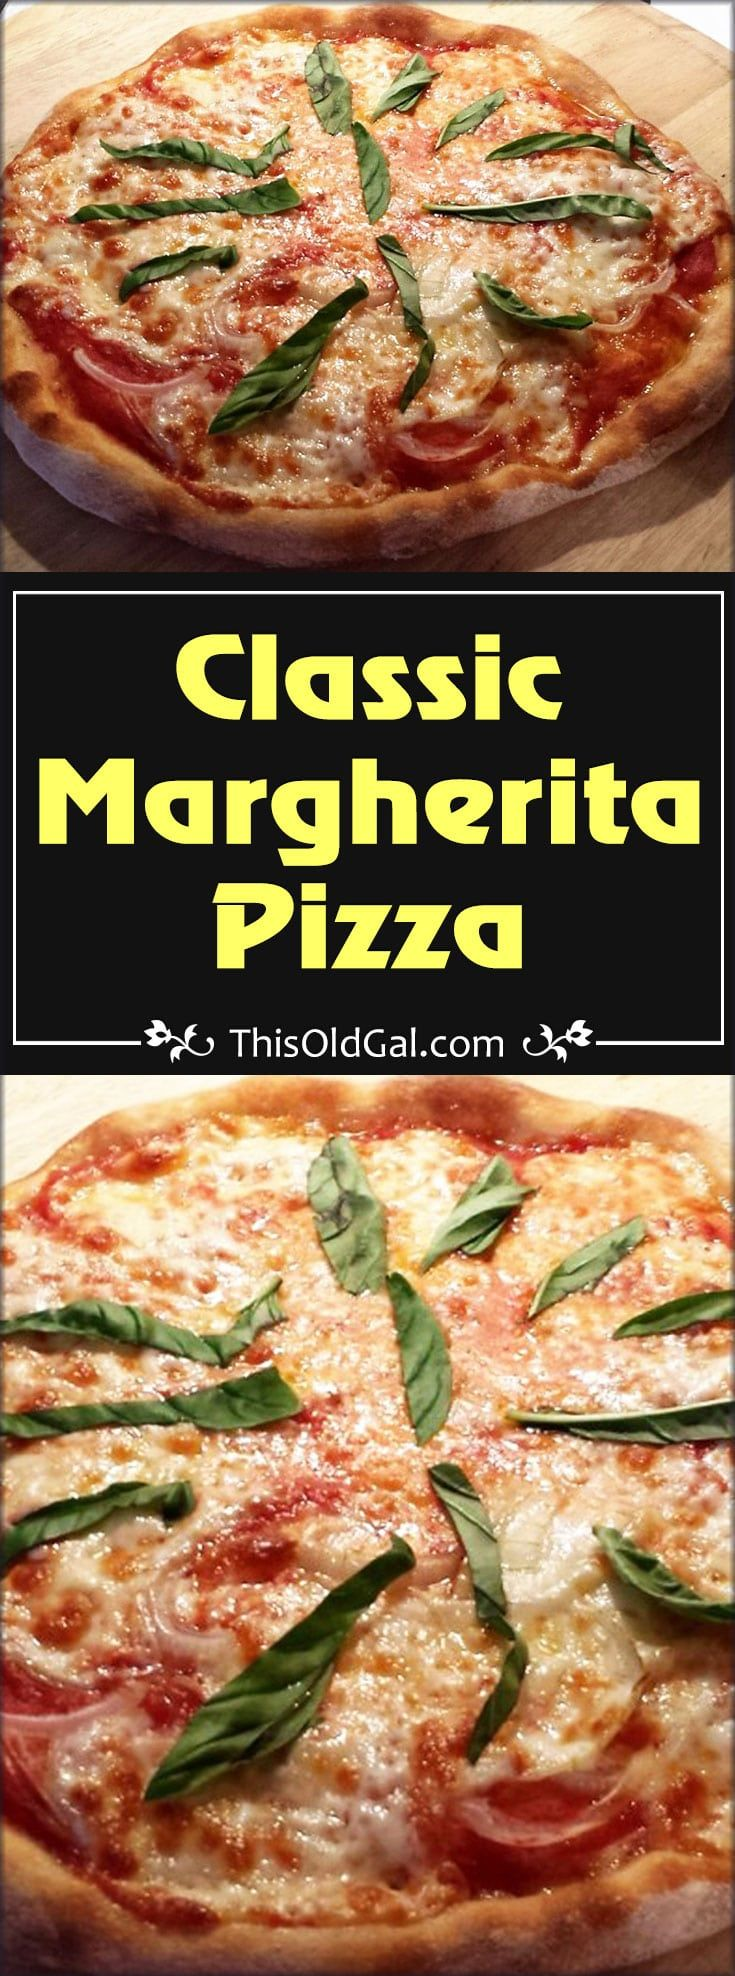 Classic Margherita Pizza is an Italian inspired pizza with fresh tomato sauce and fresh basil leaves, baked quickly in a very hot oven. via @thisoldgalcooks